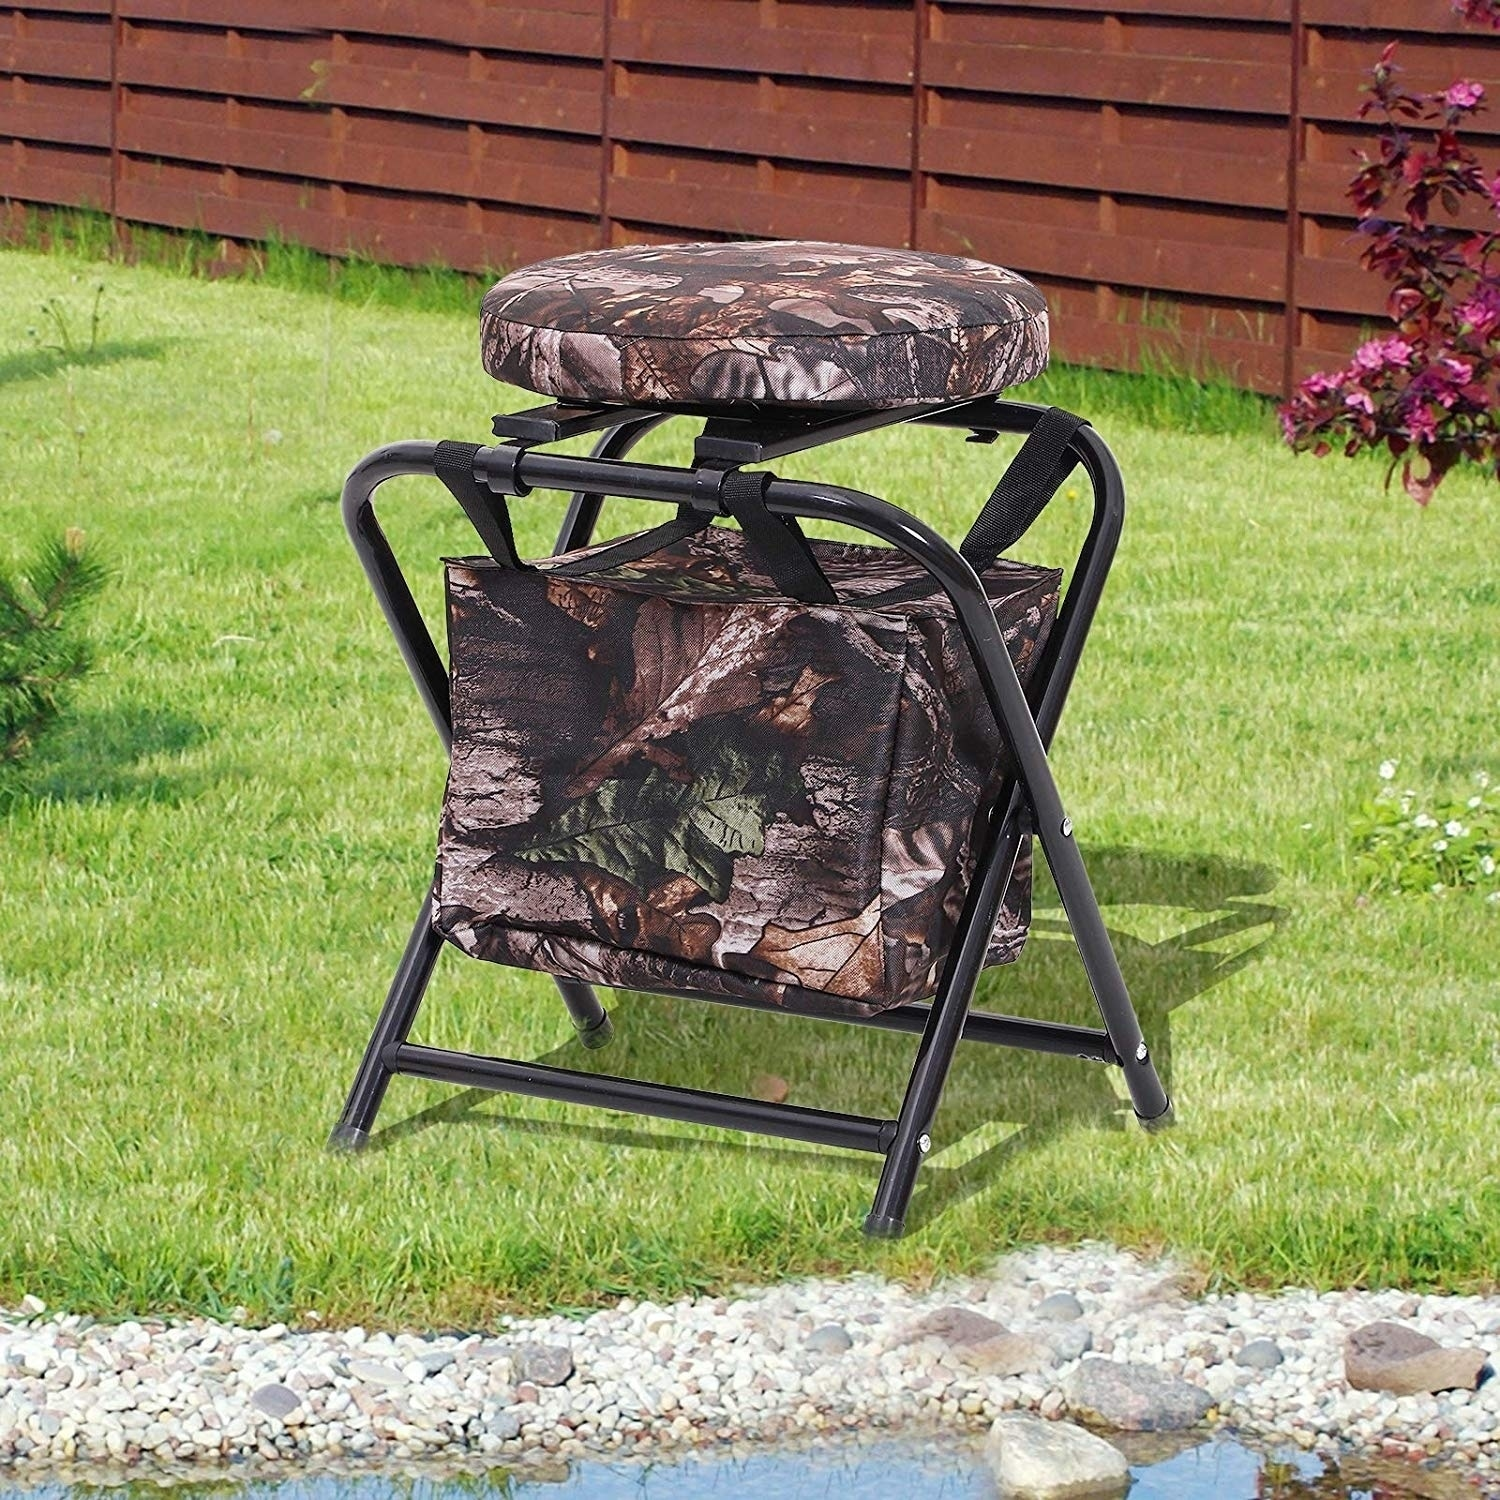 Outsunny 19″ 360 Degree Swivel Folding Travel Camping Stool with Storage Bag – Brown Camo